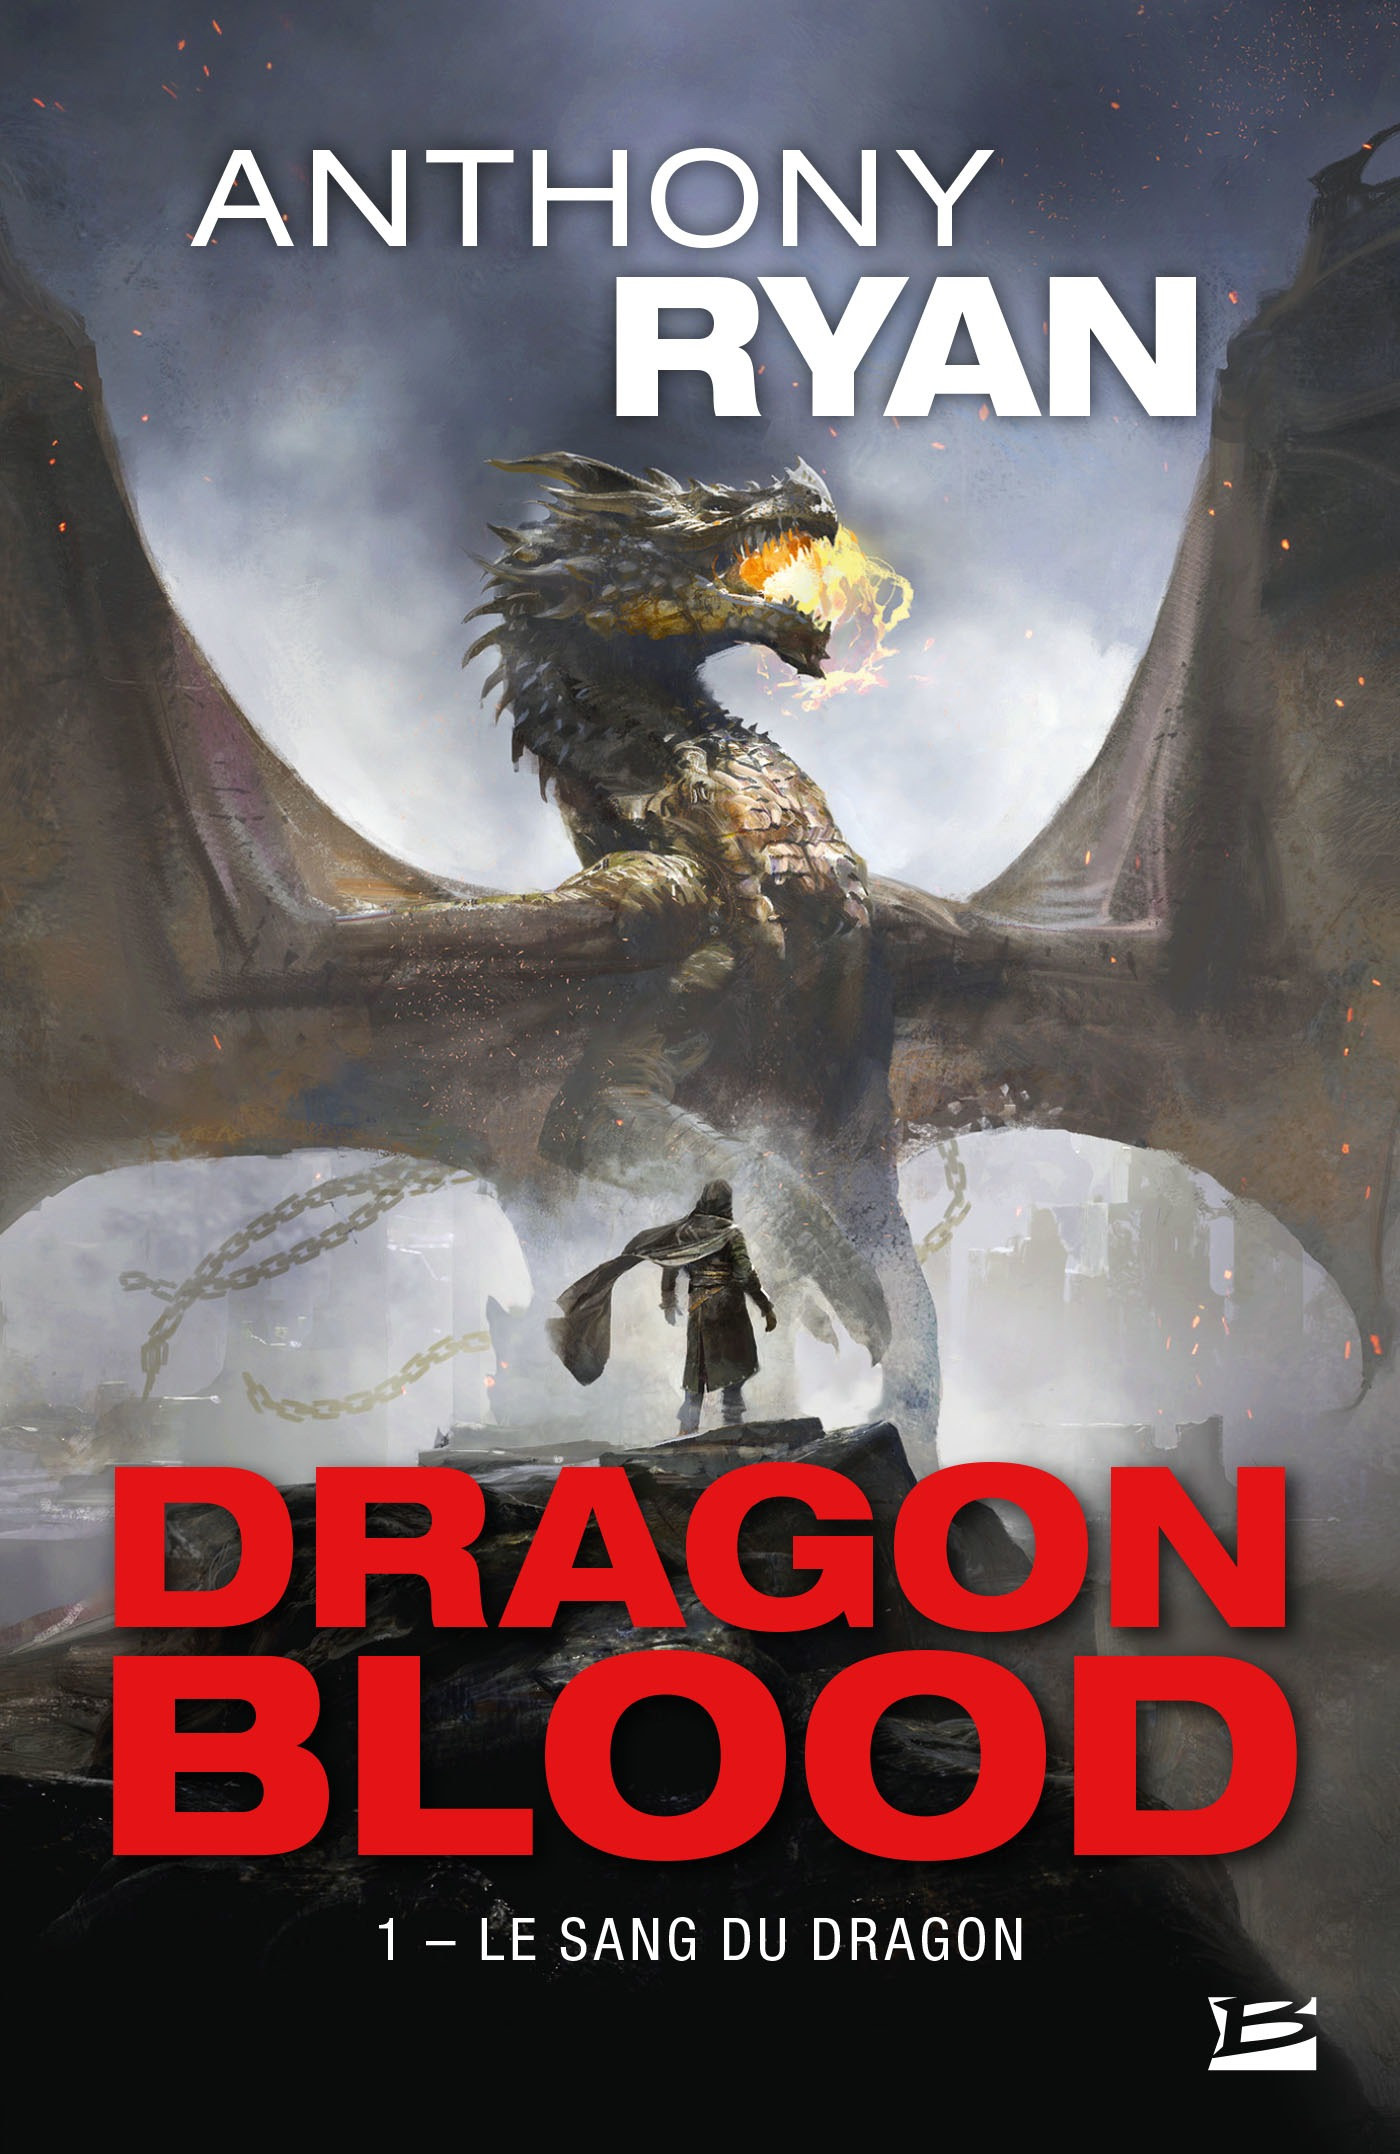 Le Sang du dragon, DRAGON BLOOD, T1